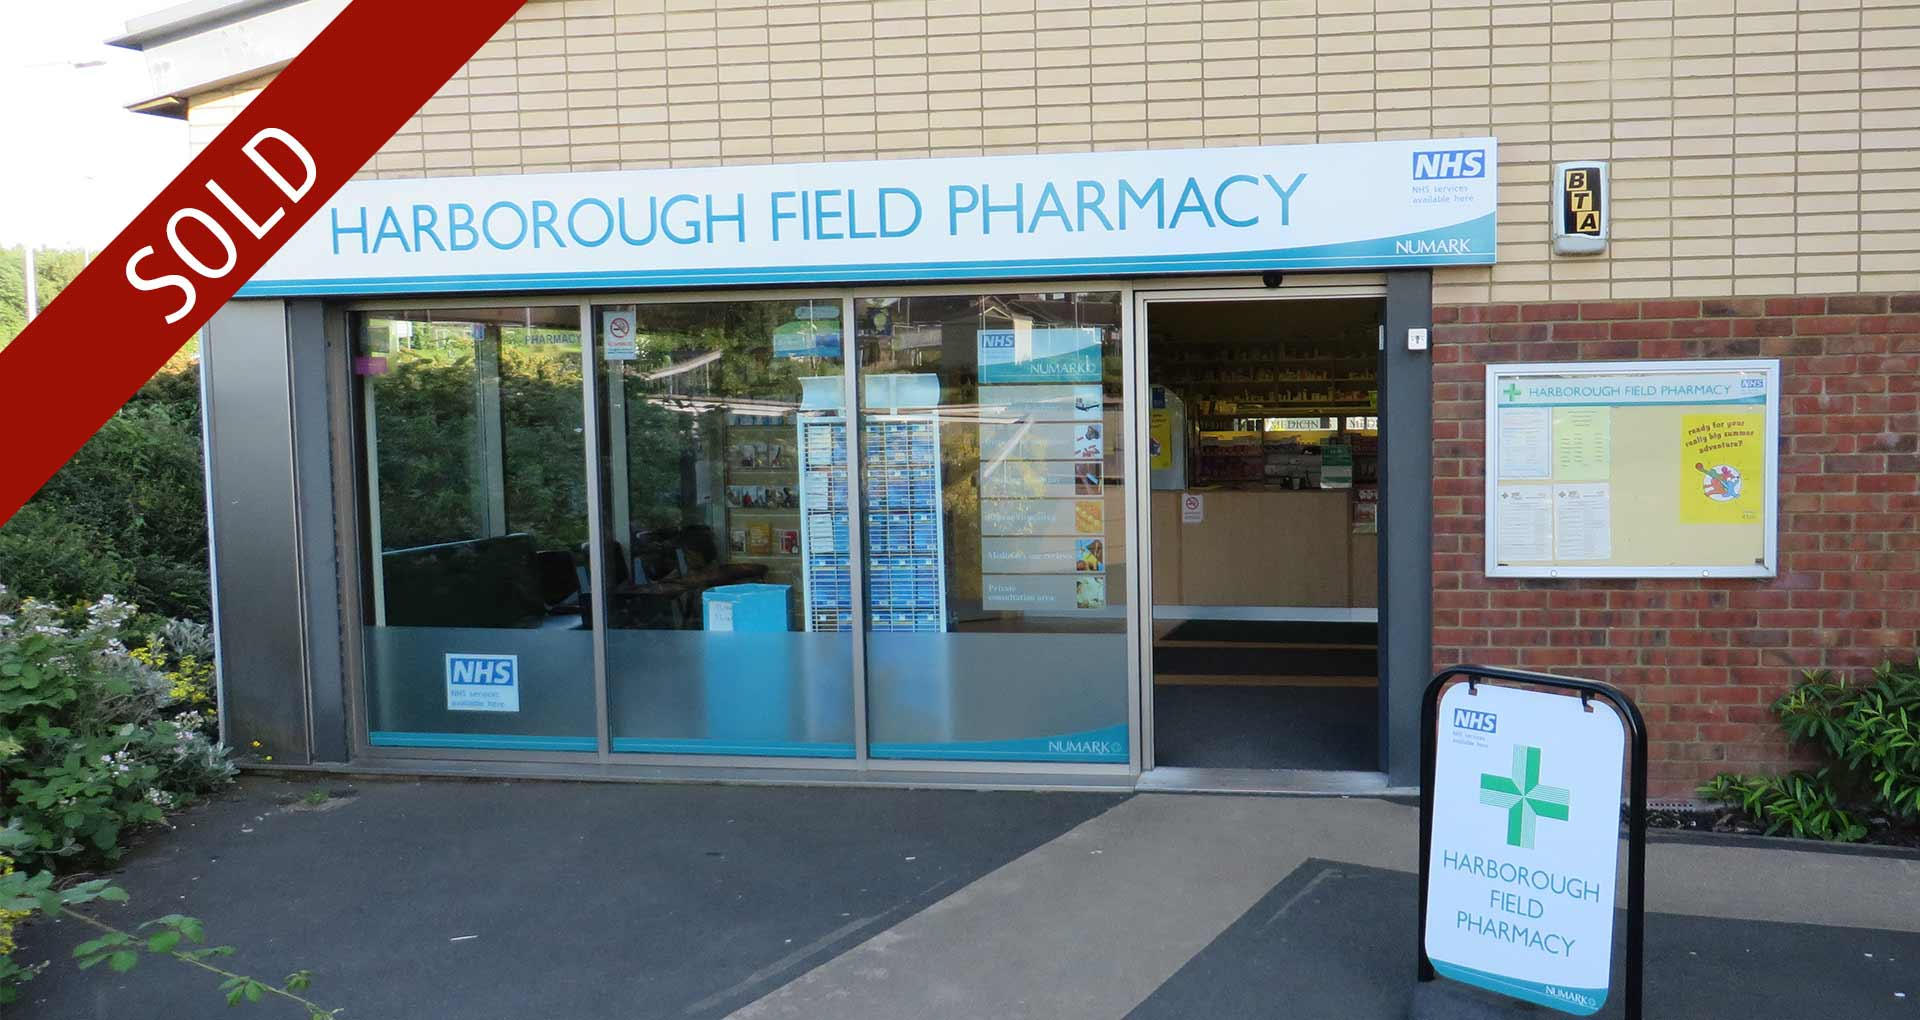 Barrington Healthcare Ltd (t/a Harborough Field Pharmacy) Northants